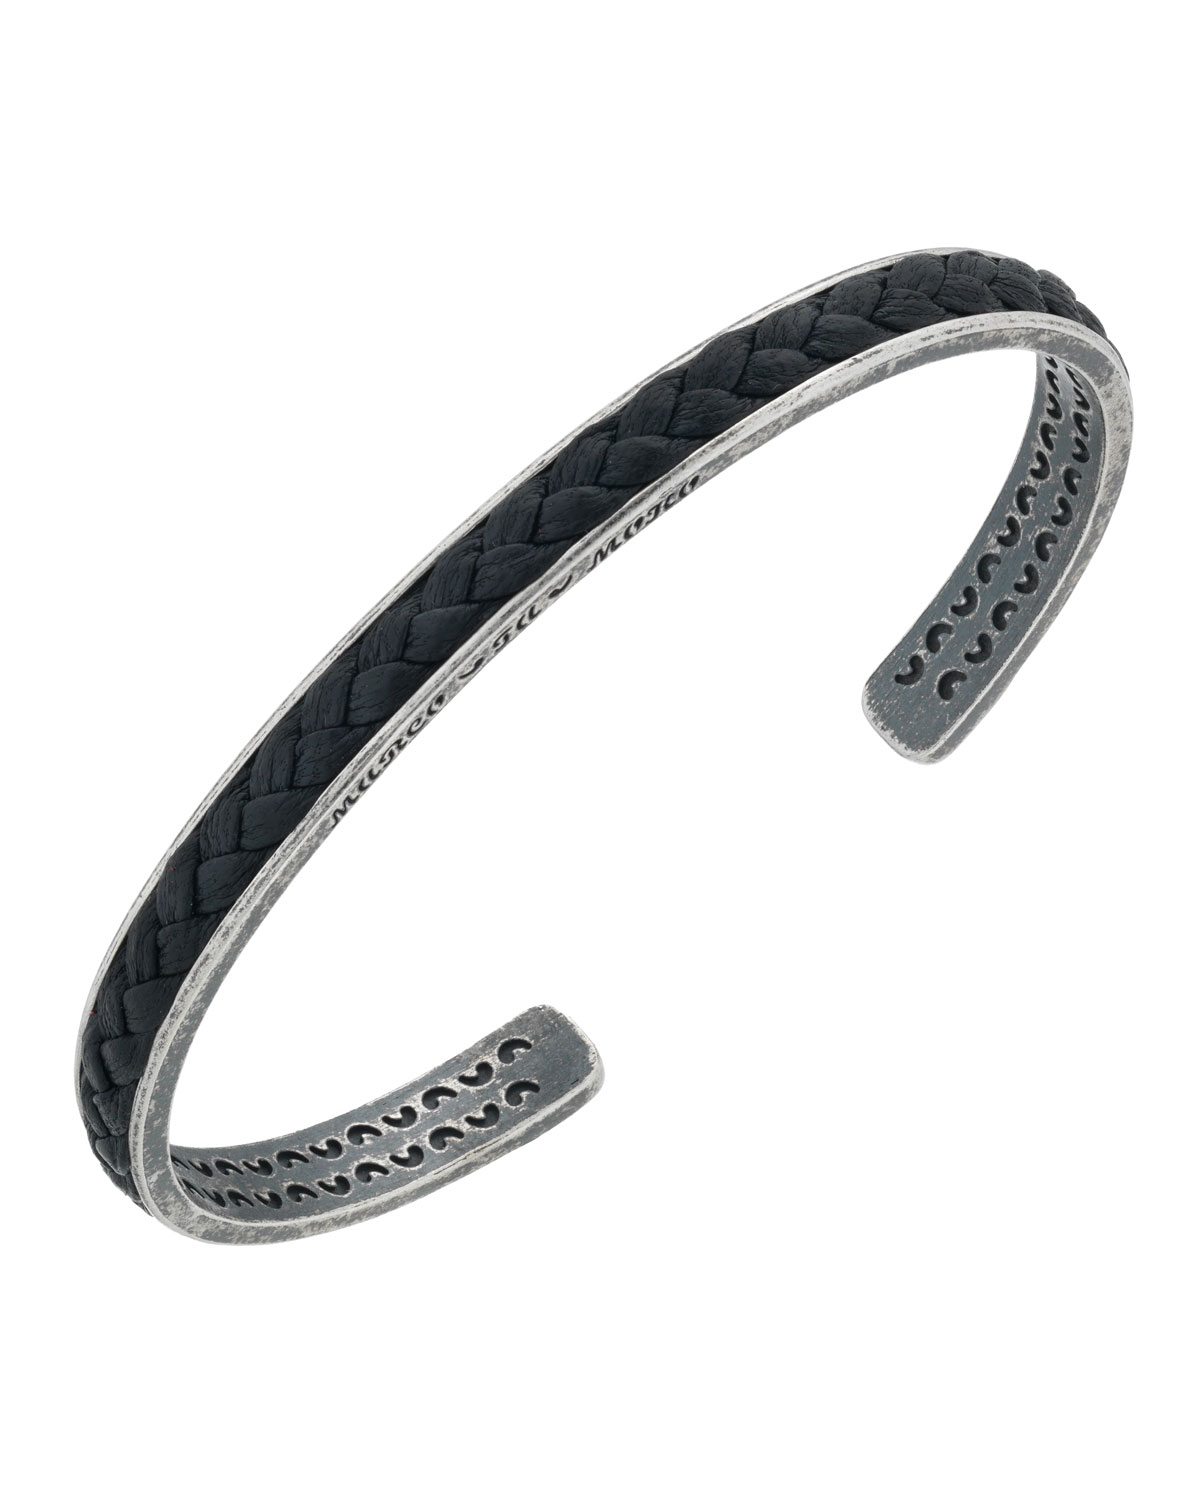 MARCO TA MOKO Men'S Braided Leather/Silver Kick Cuff Bracelet, Black